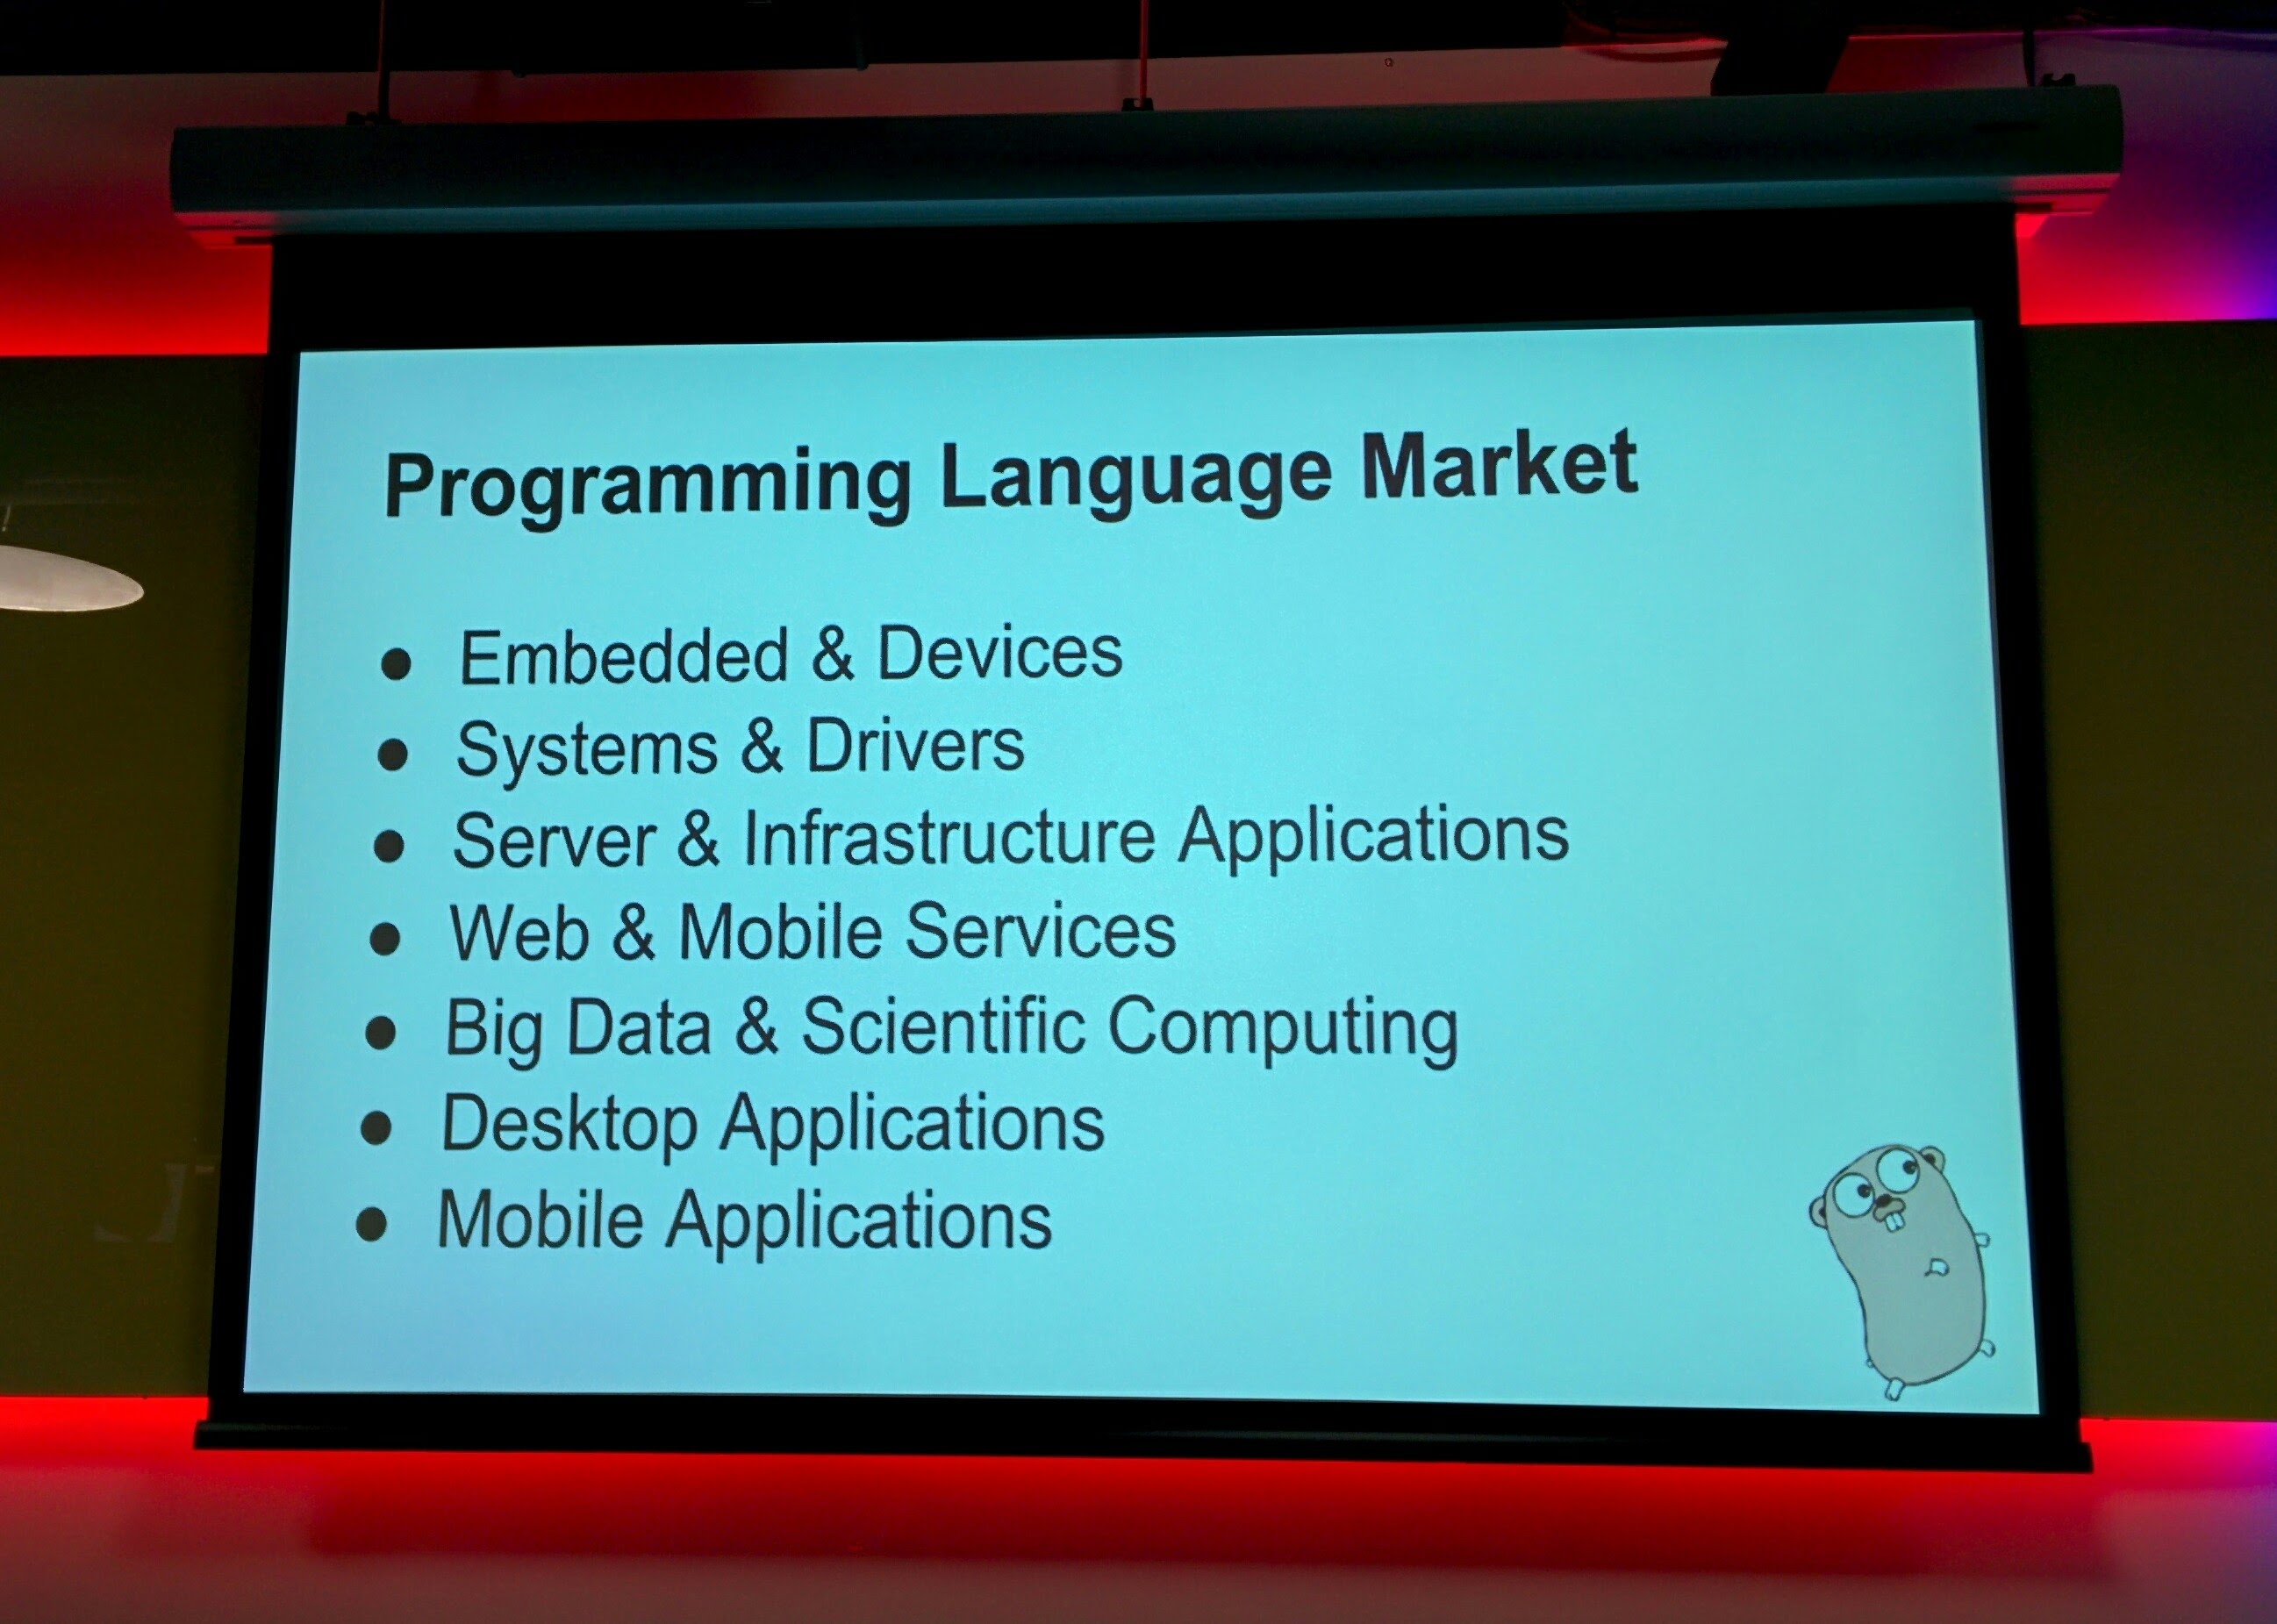 Programming Language market for Go, courtesy Jason Buberel